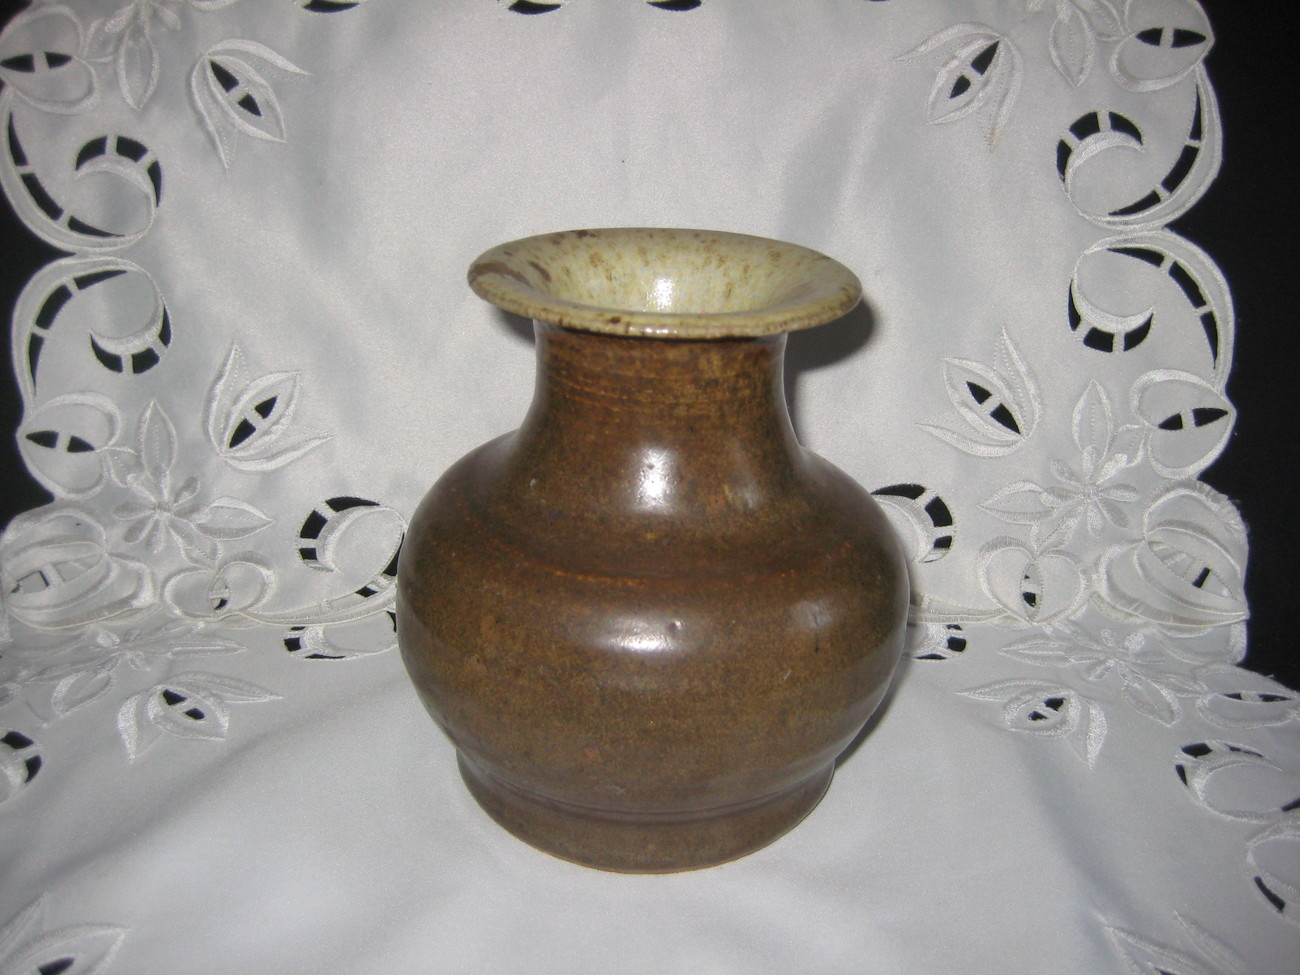 Handmade art pottery vase signed & dated by artist